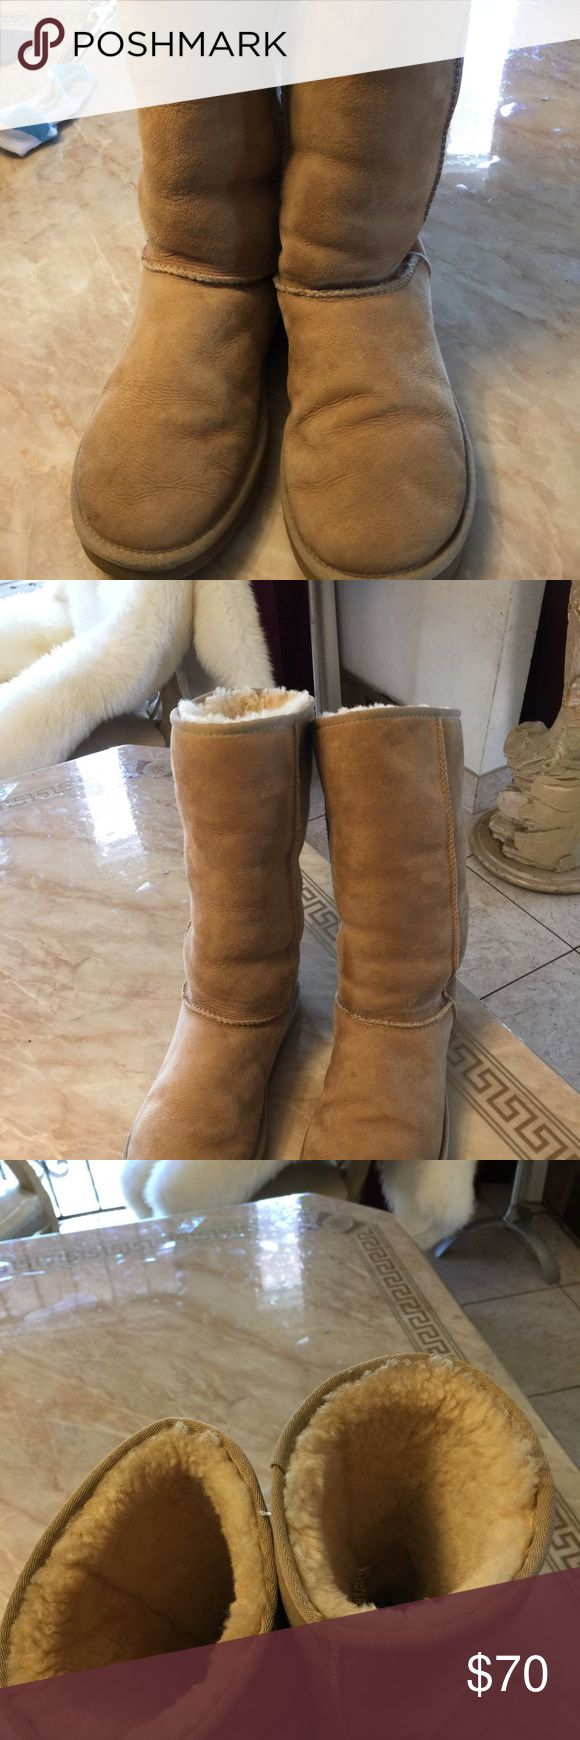 Tall ugg boots authentic Size 8 Pre loved gently used good condition Reasonable offers welcome UGG Shoes Winter & Rain Boots